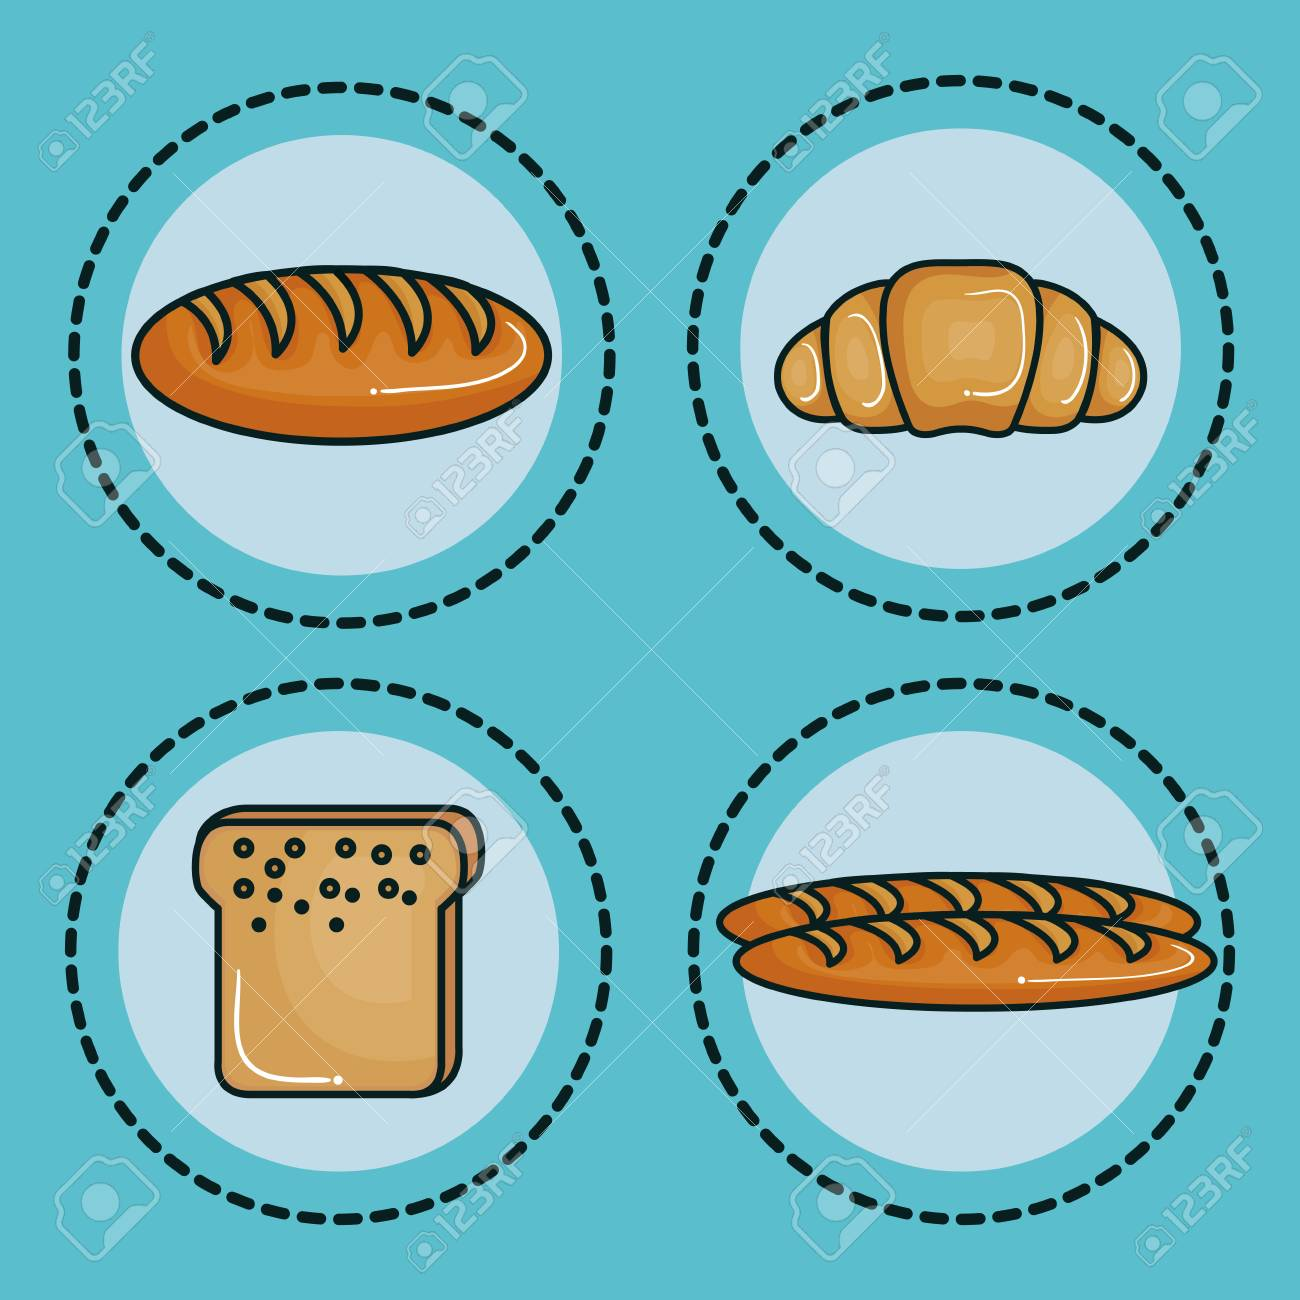 Different types of bread stickers over teal background vector illustration stock vector 78269134